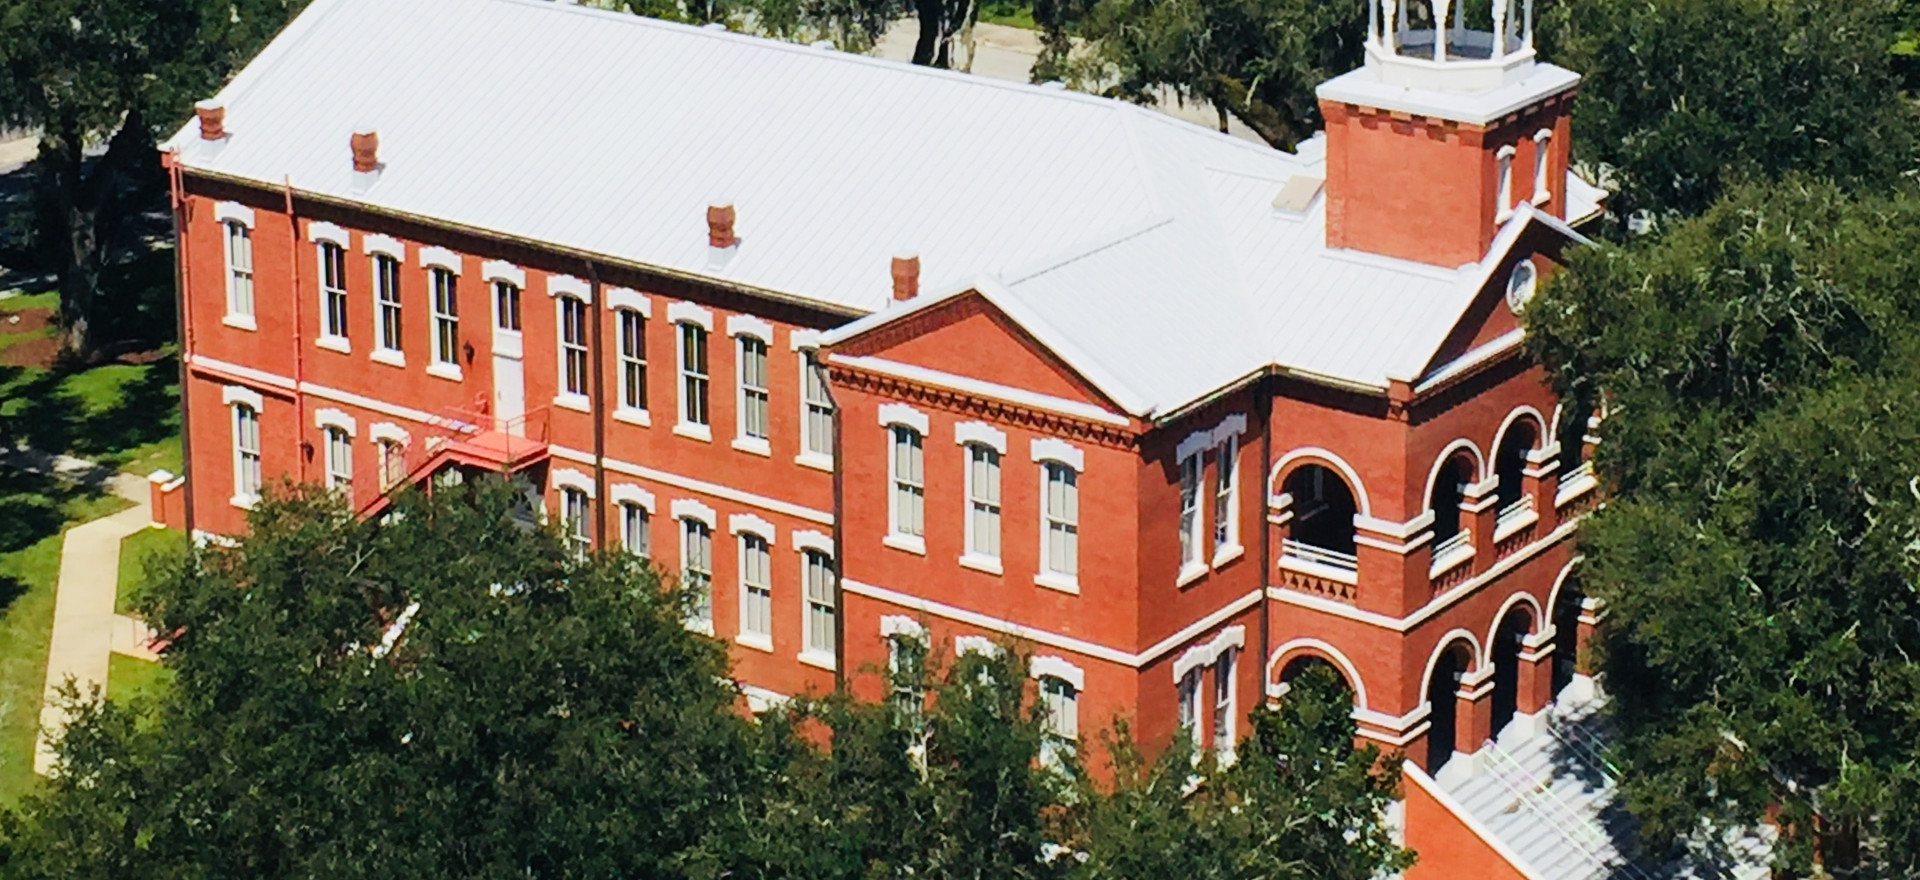 Kissimmee Historic Courthouse